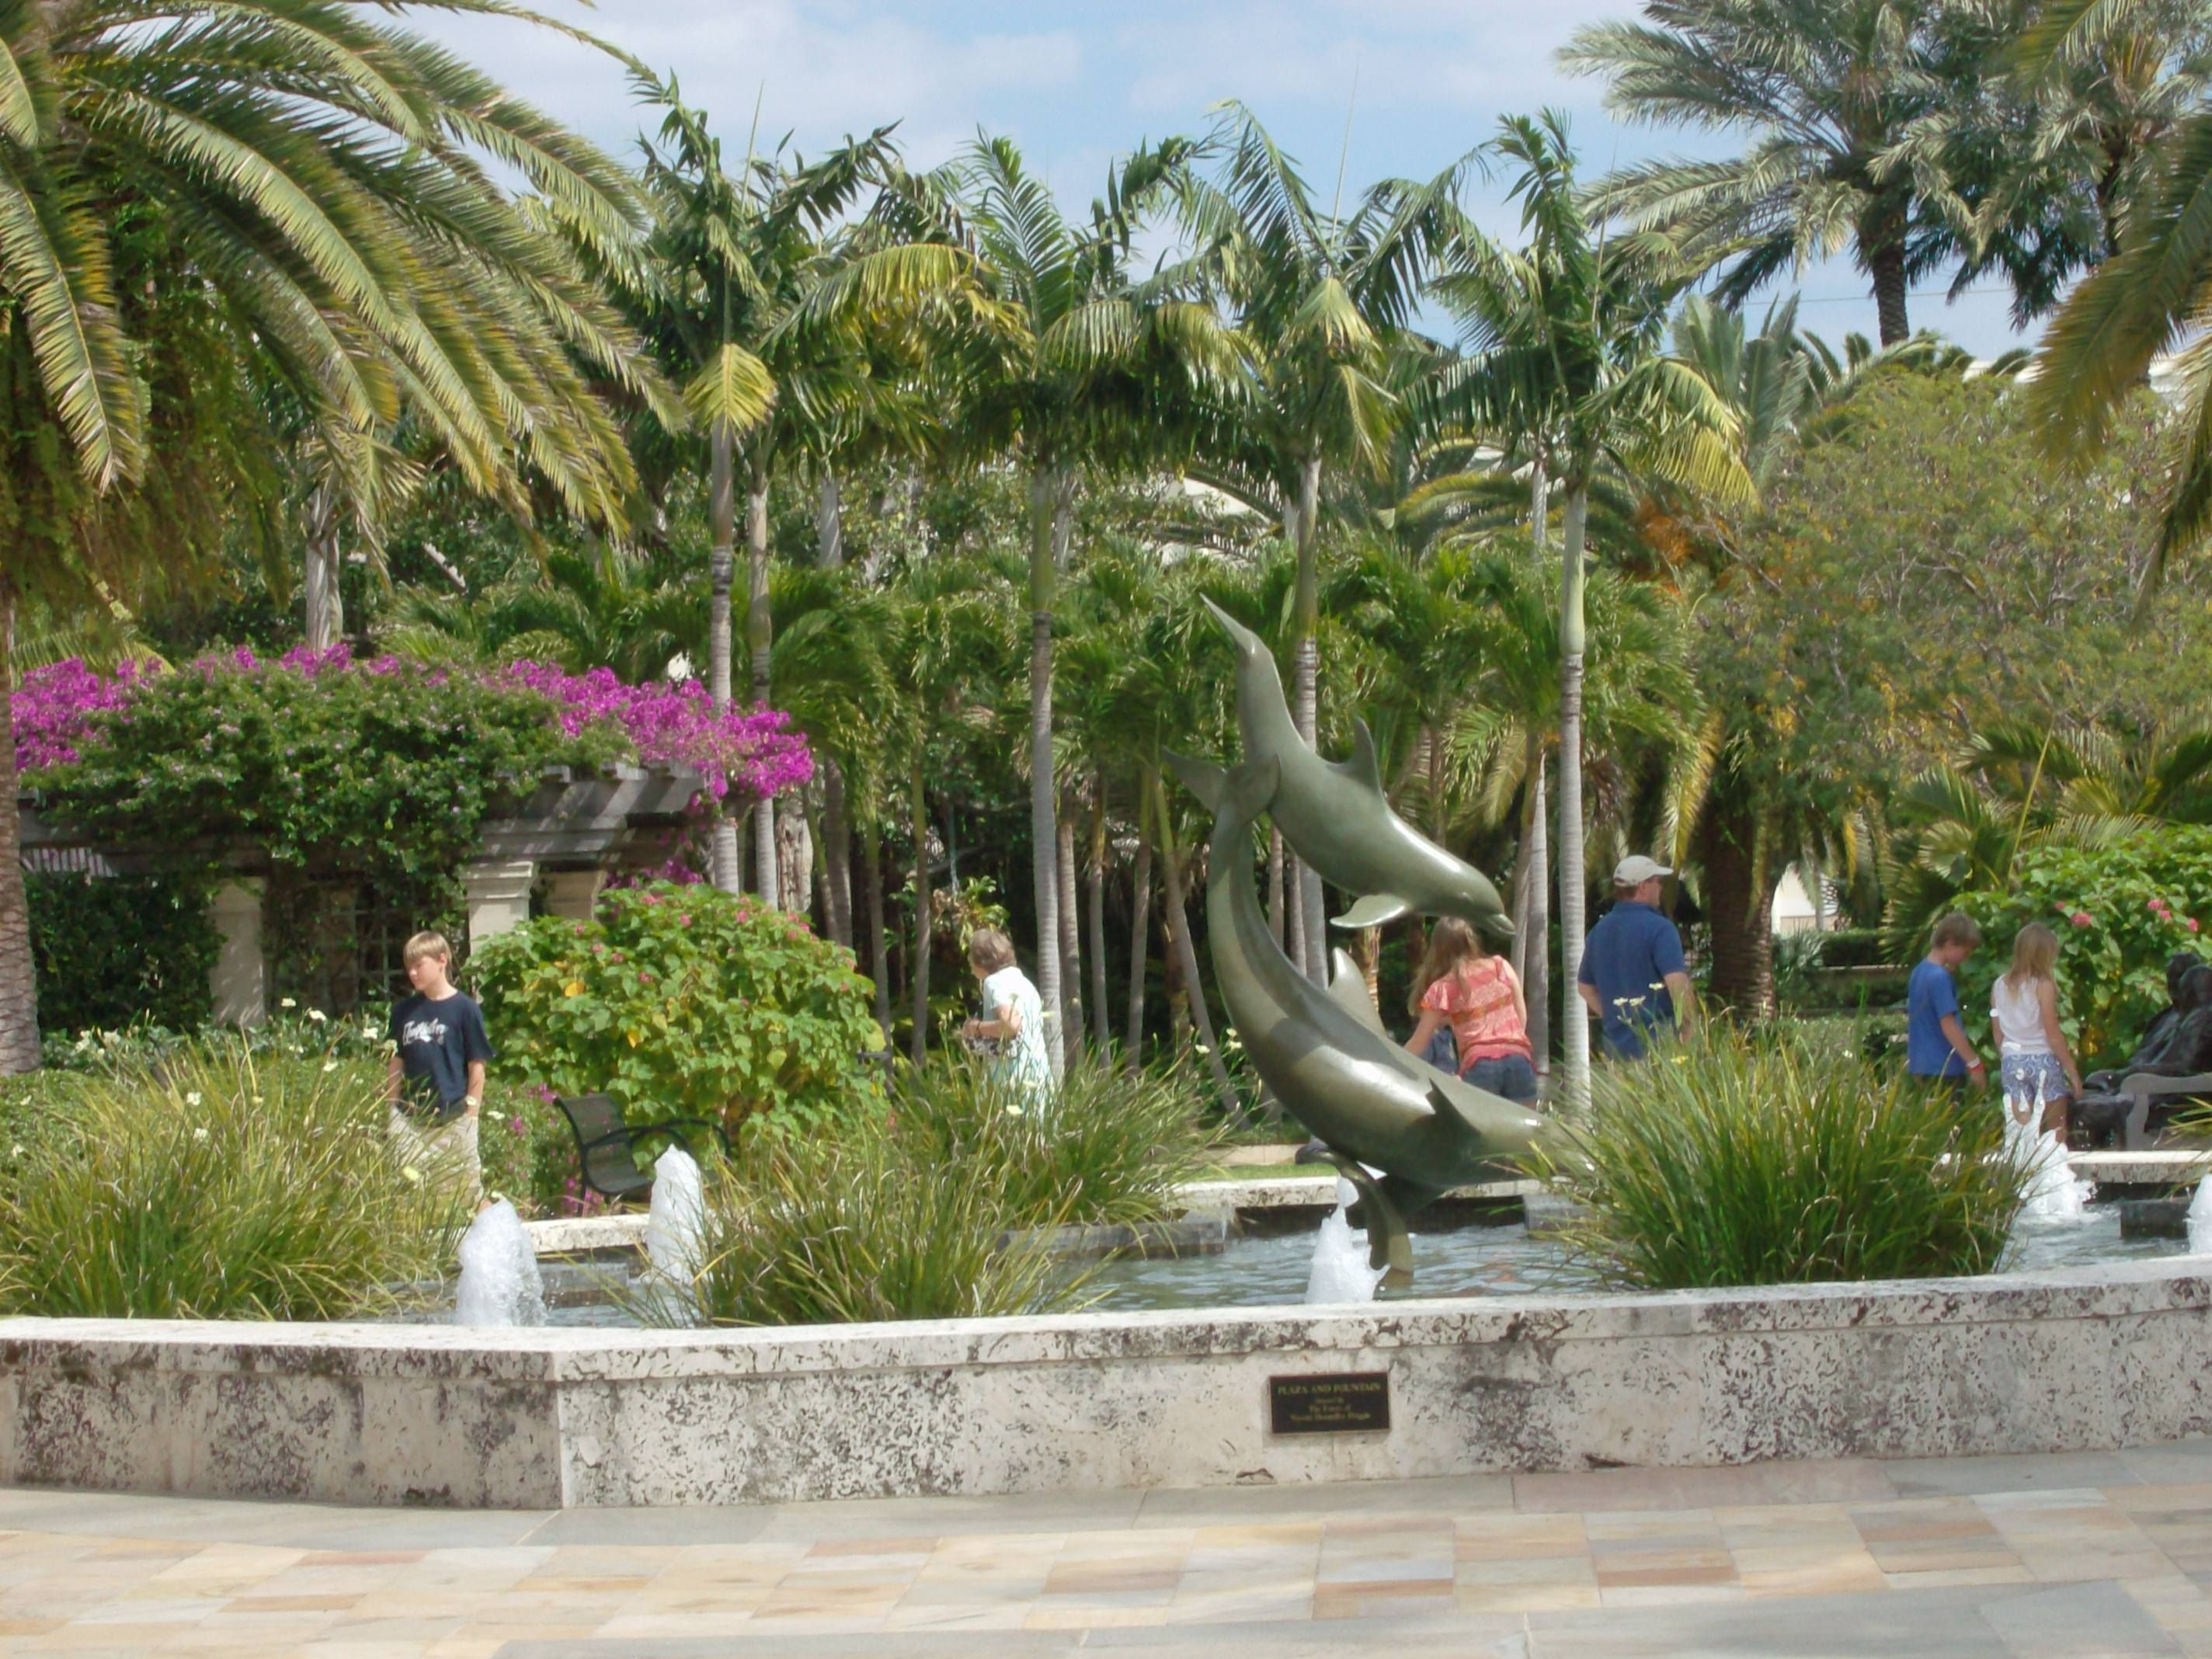 32 best Town of Palm Beach images on Pinterest | Palms, Palm beach ...